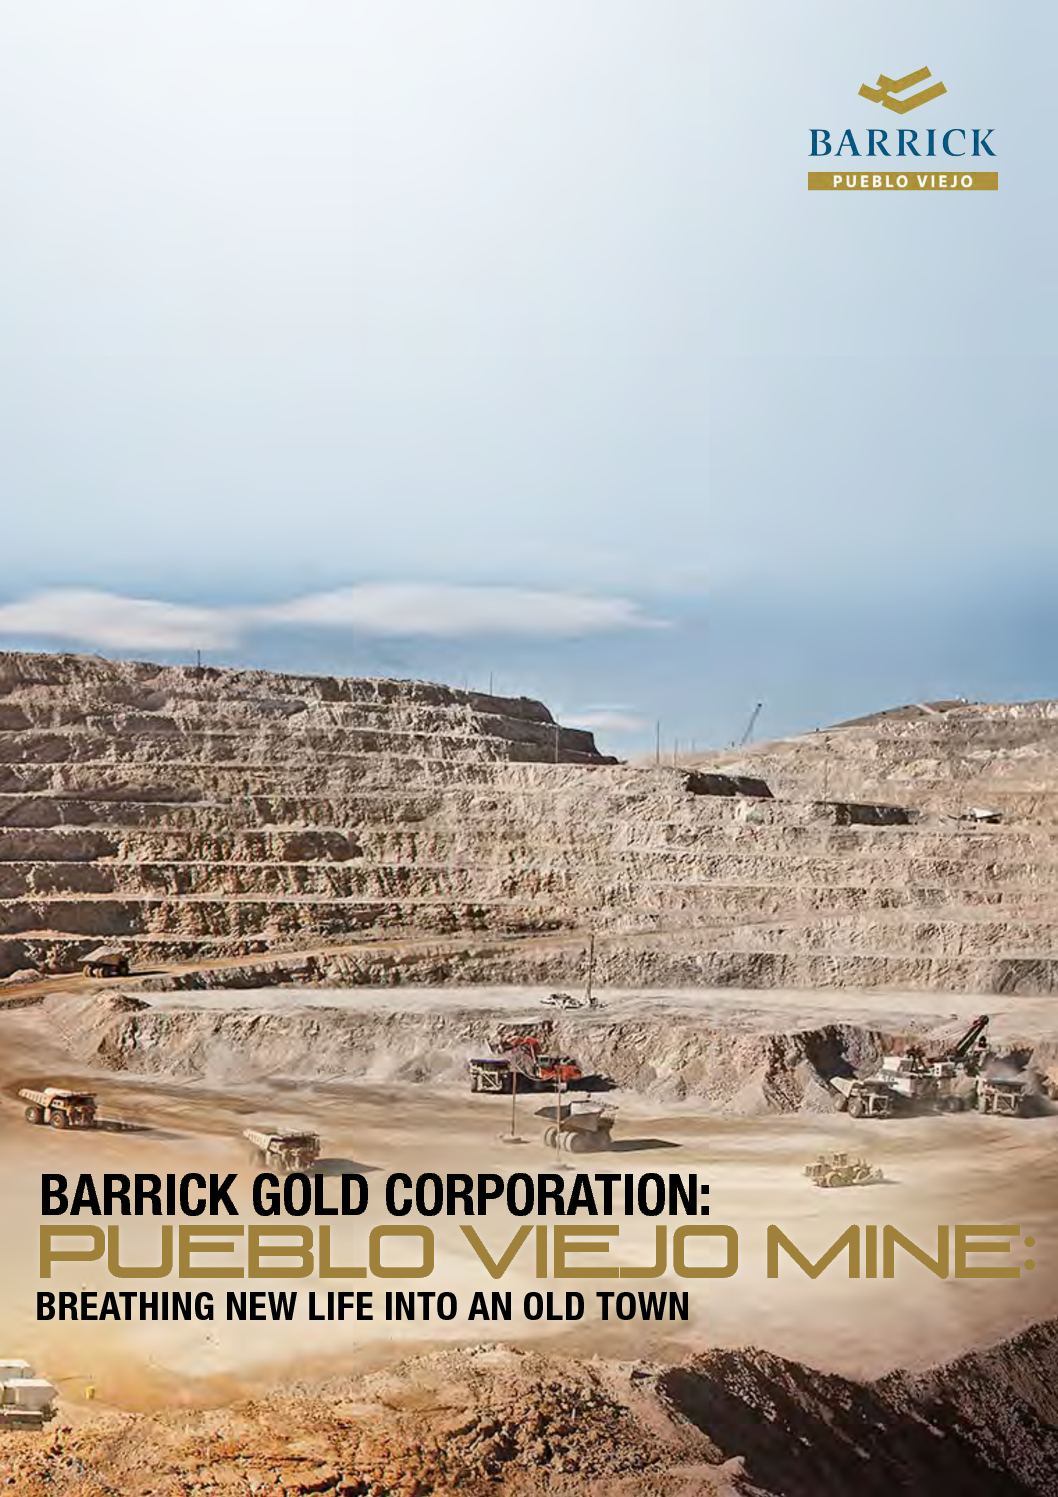 barrick gold corporation Barrick gold corporation (abx) - canadian co engaged in the production of gold/copper in canada, us, peru, chile and 9 other countries.